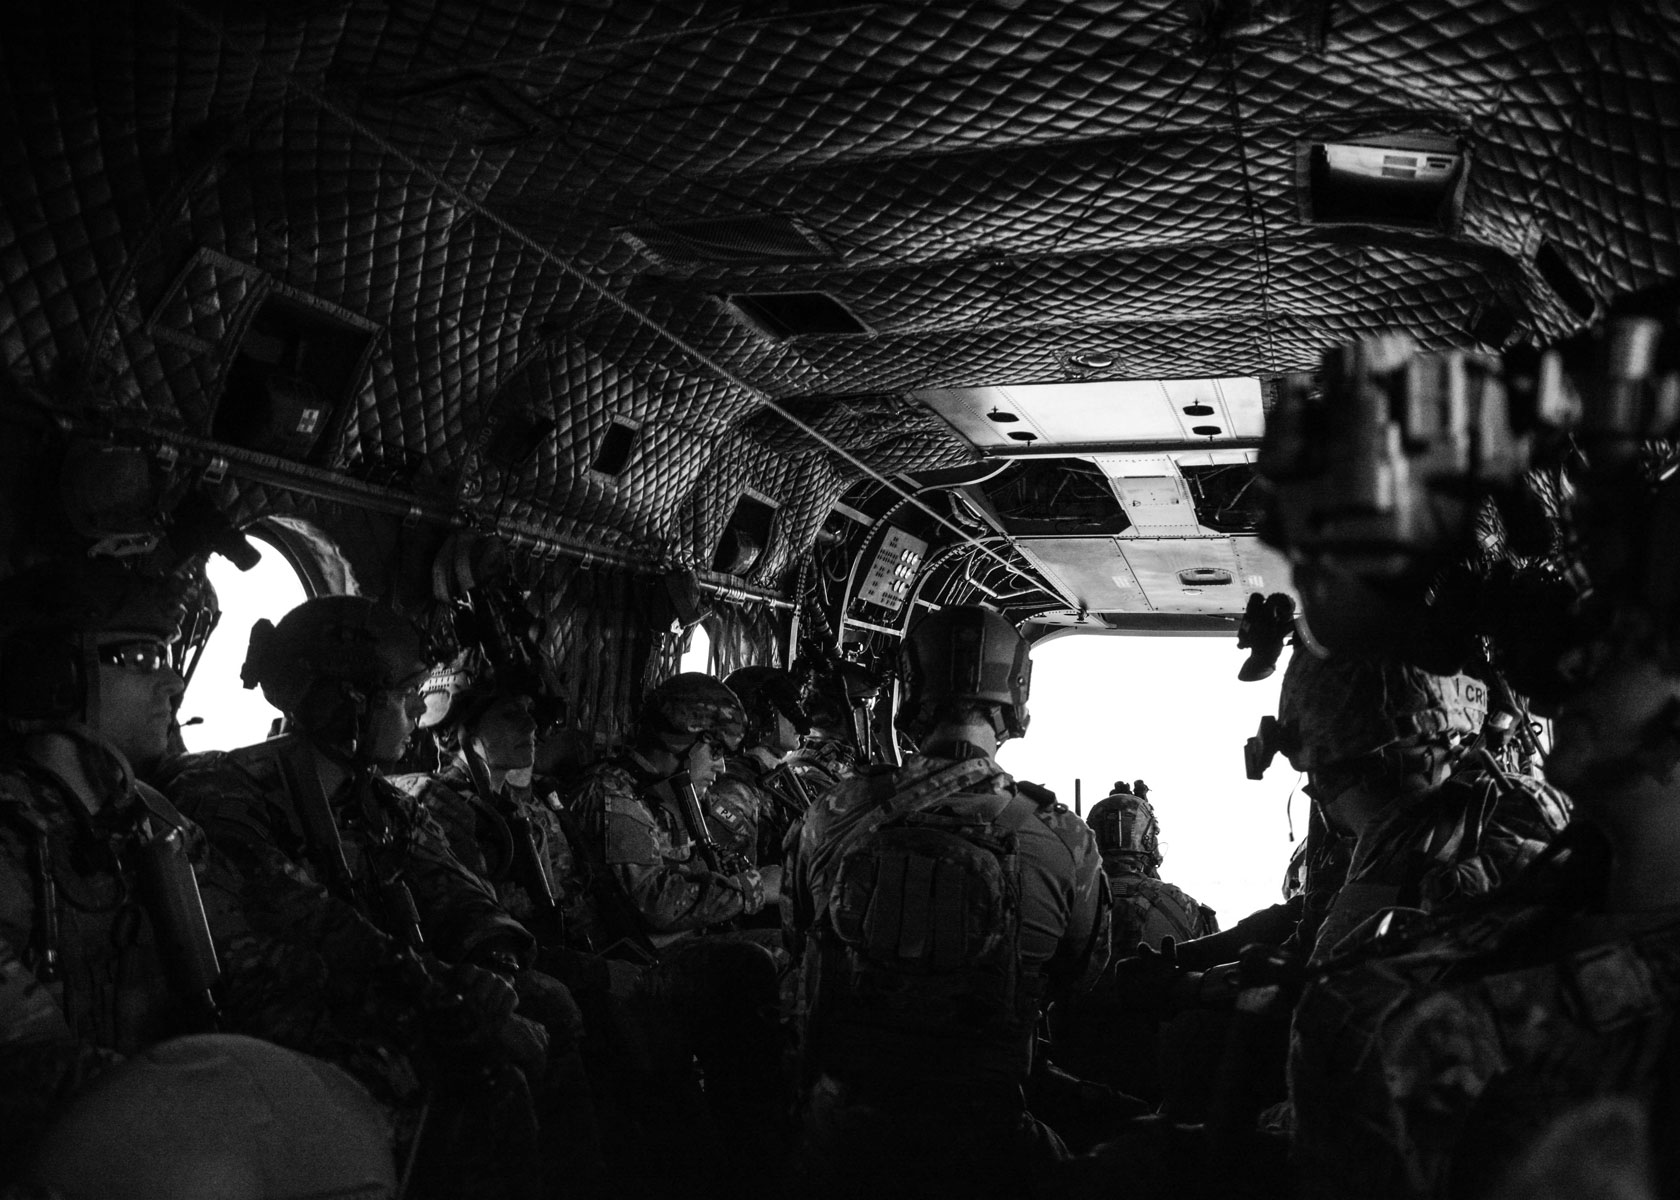 Green Berets from 10th Special Forces Group (Airborne) sit inside a CH-47 Chinook helicopter as they conduct a training exercise.